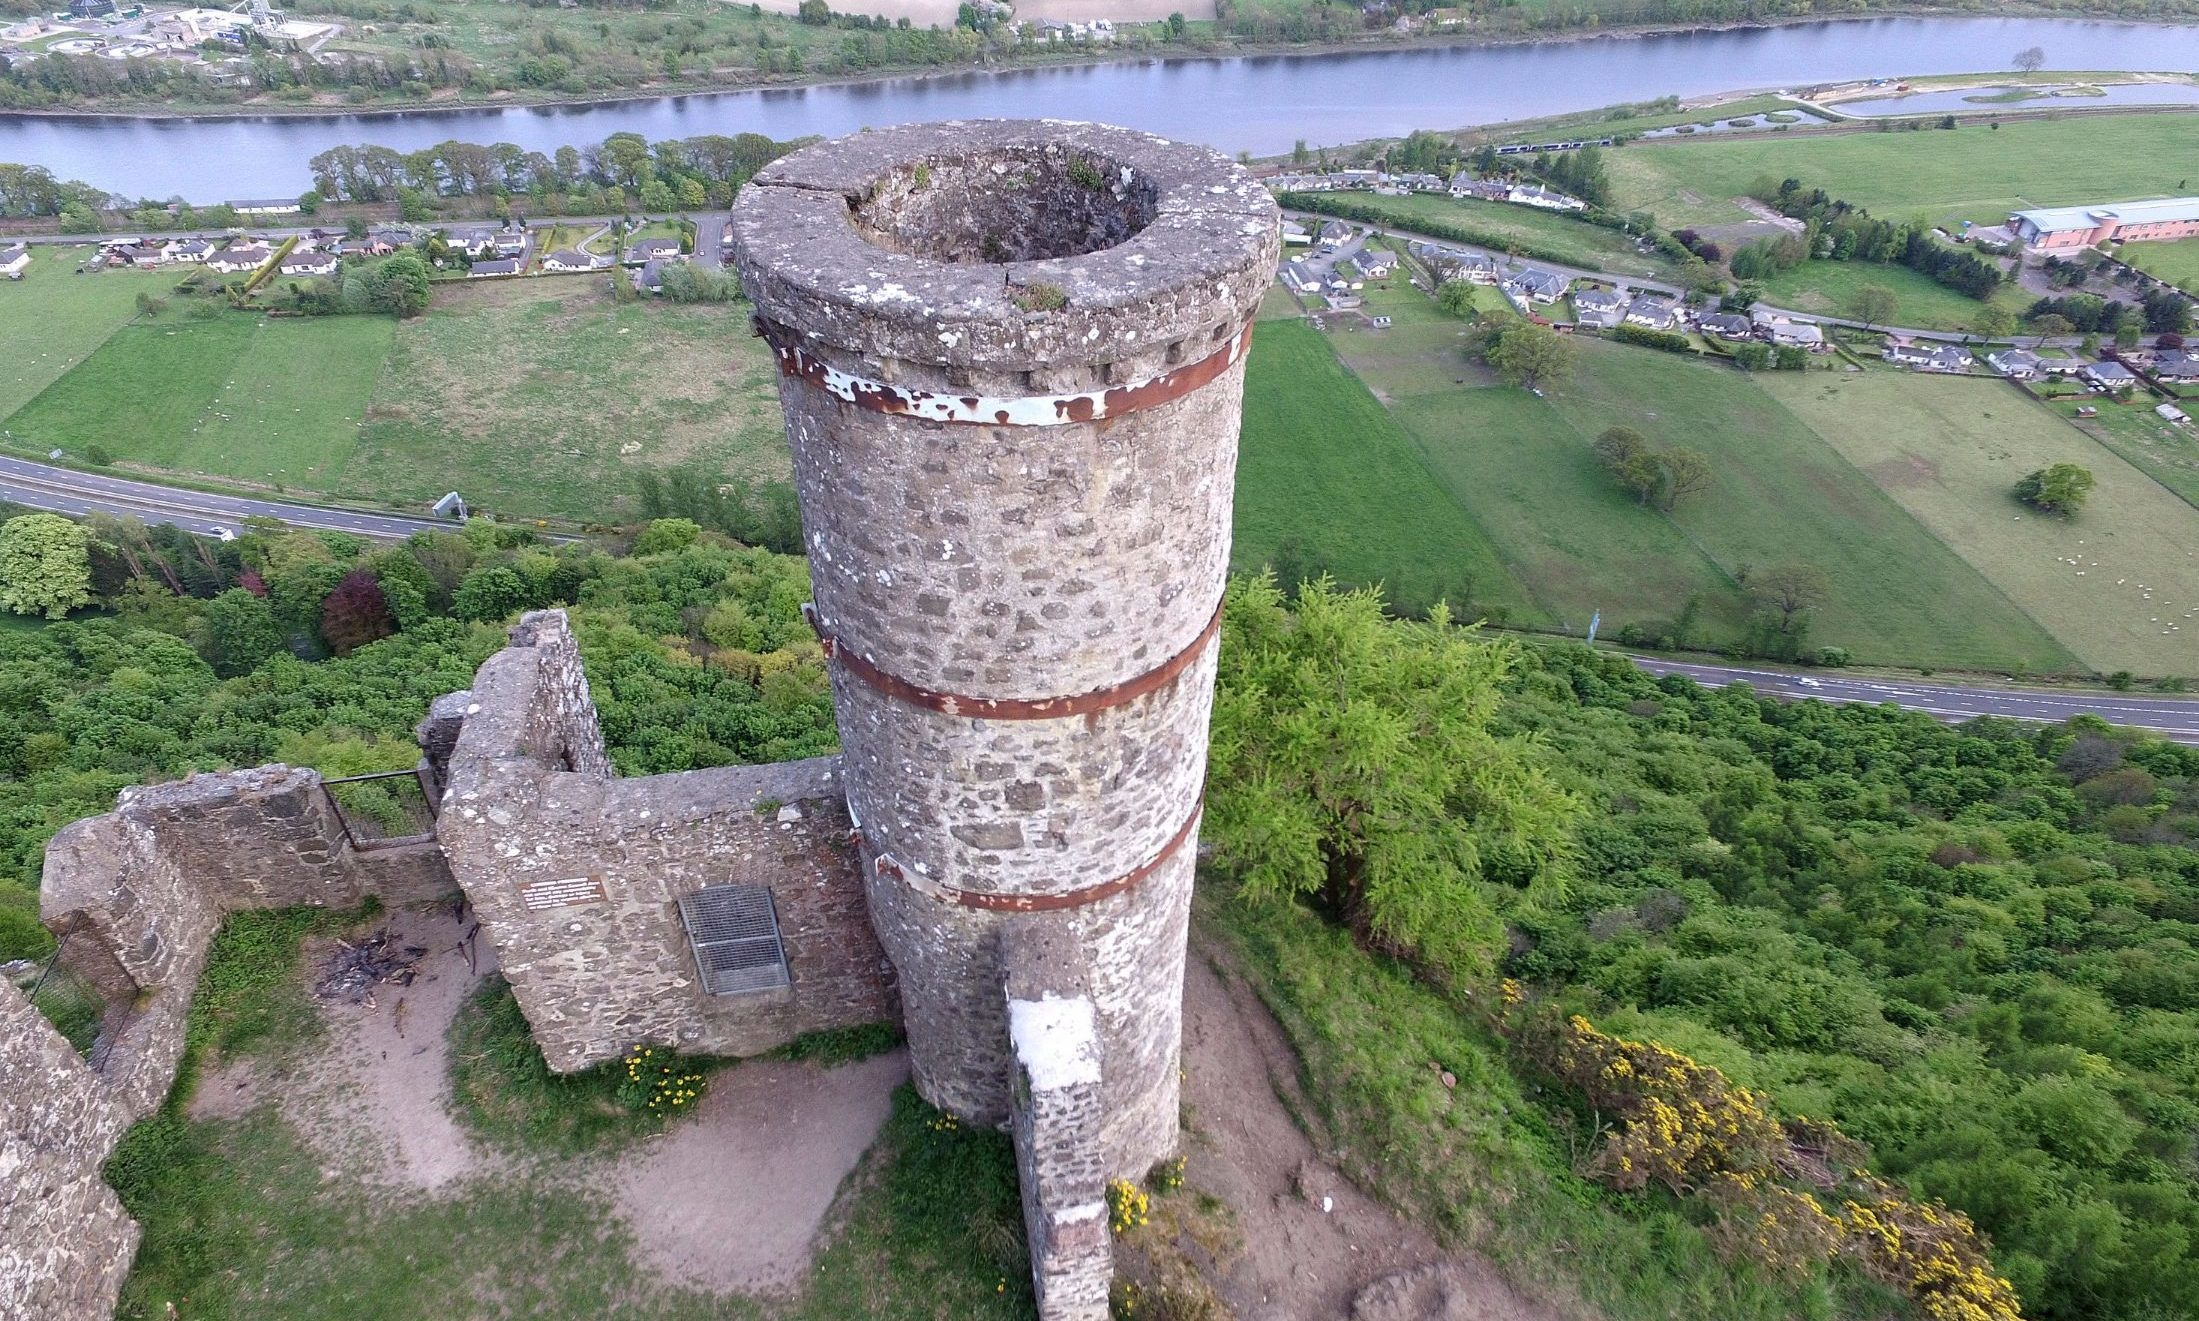 Drone footage shows signs of damage at Kinnoull Hill Tower.